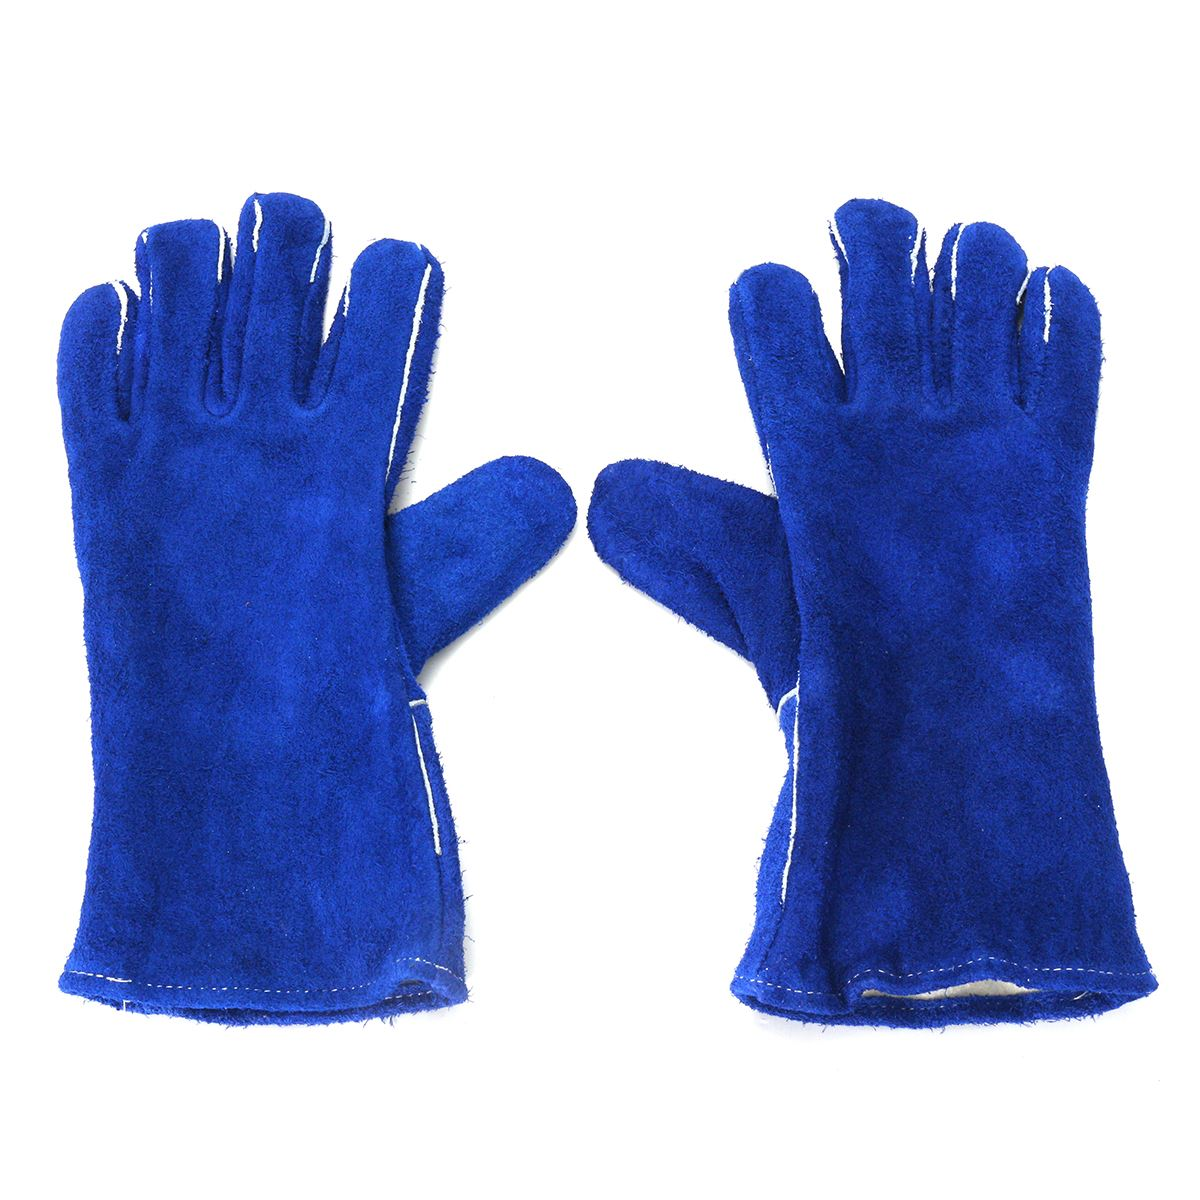 NEW Safurance 14 Welding Gloves Gauntlets Welder Hands Fire High Temperature Protection Blue Workplace Safety Glove manitobah рукавицы fur gauntlets